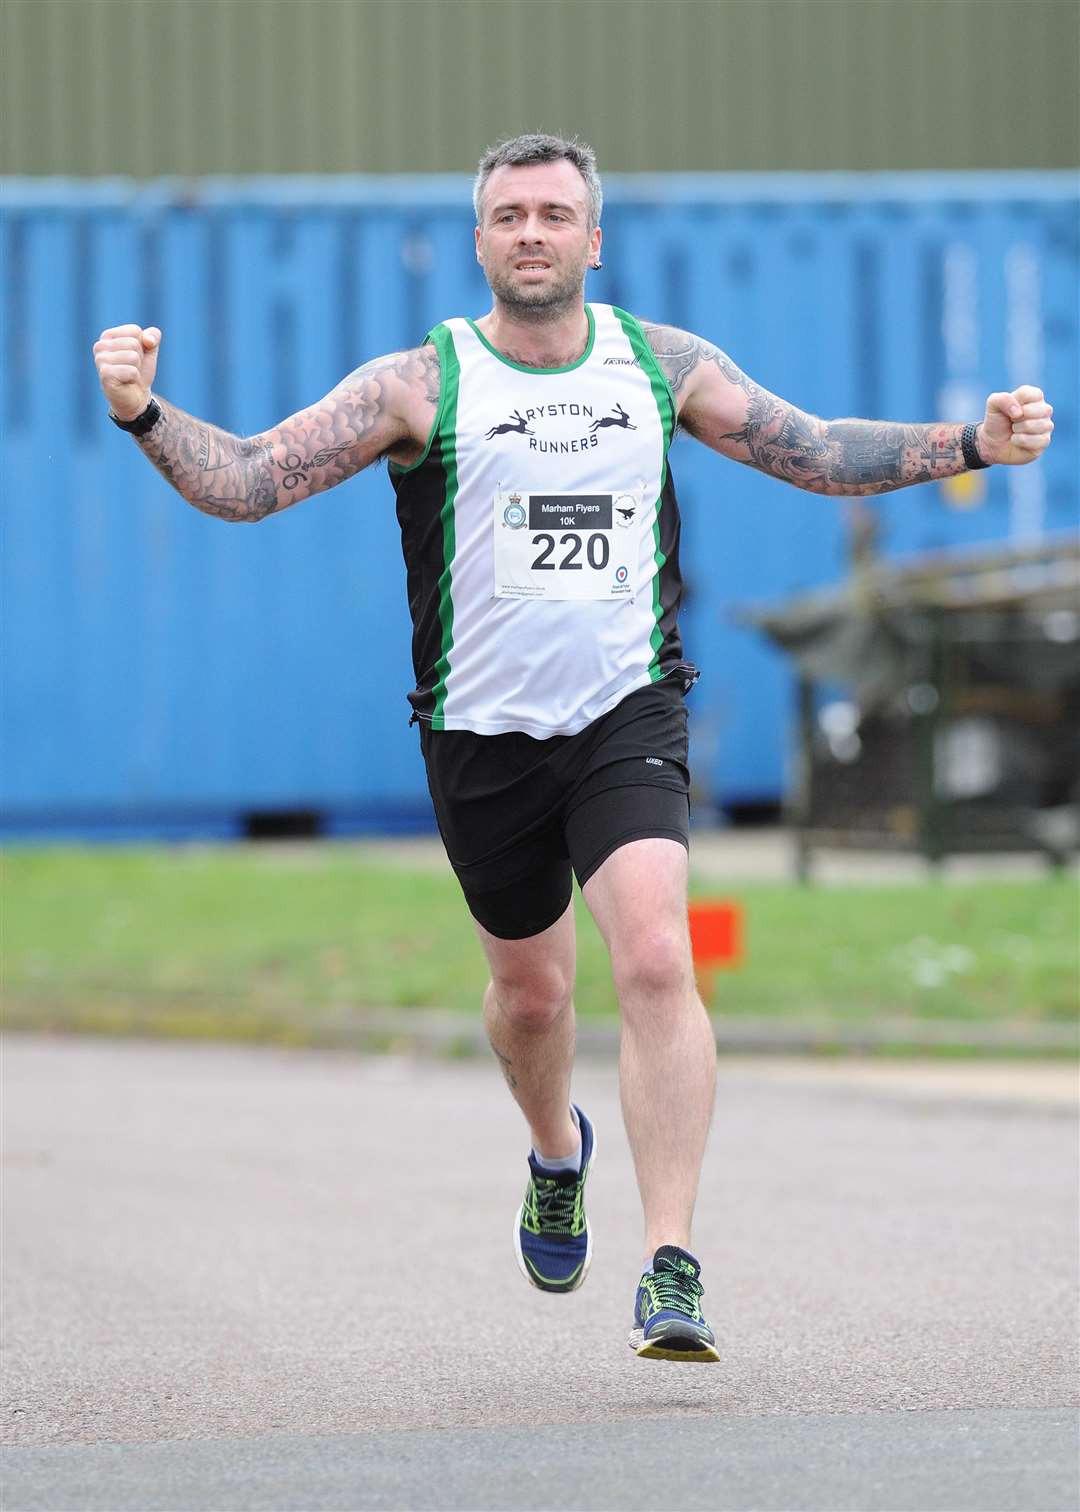 Matt Hitchcock in action at the Marham Flyers New Year's Eve 10k race. Picture: TIM SMITH